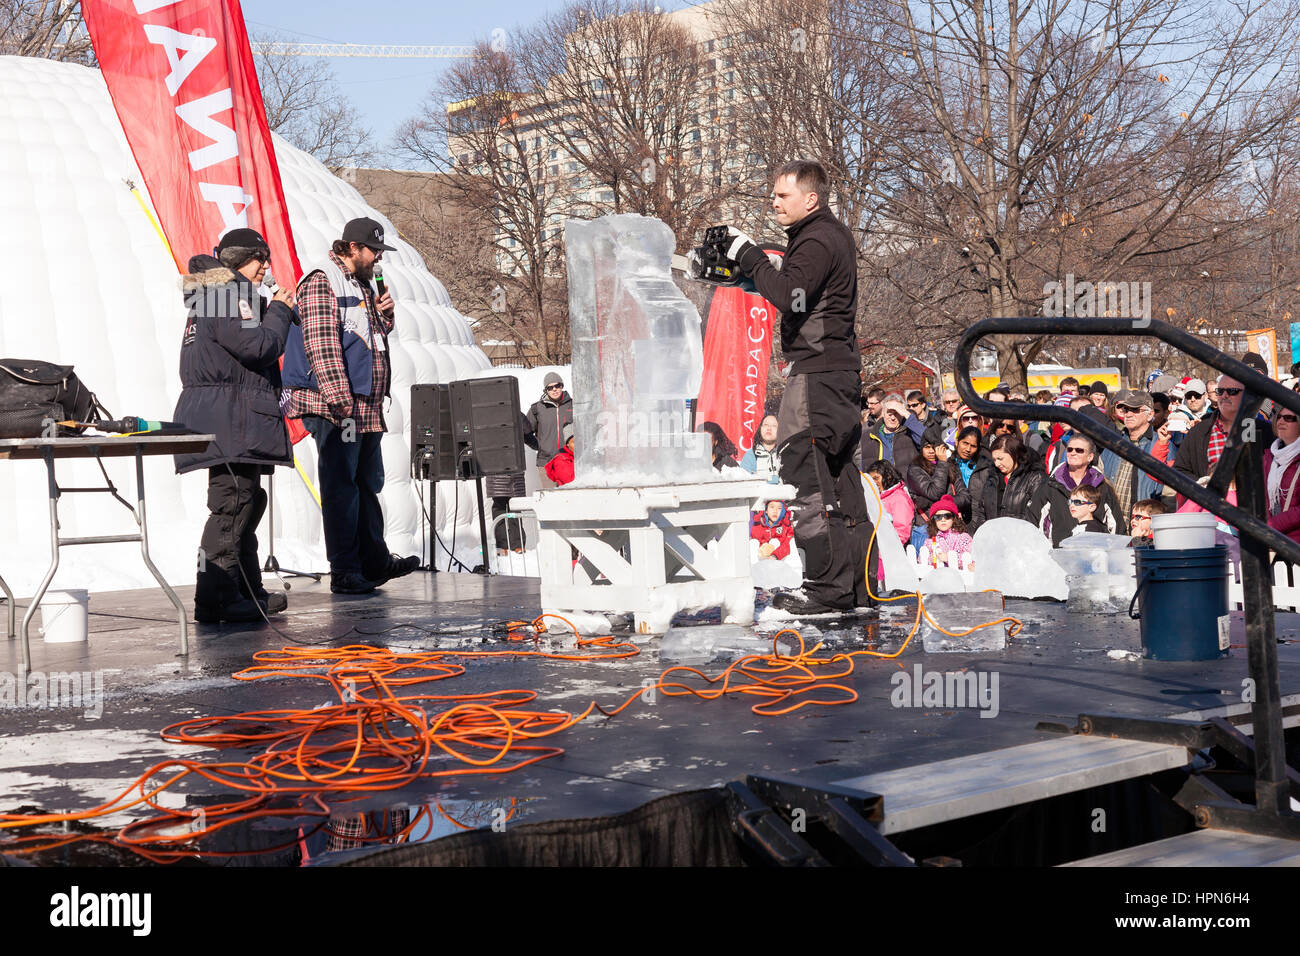 Ice carving demonstration in Ottawa,Ontario,Canada, Capital city of Canada in the Winter, Winterlude 2017, Canada - Stock Image